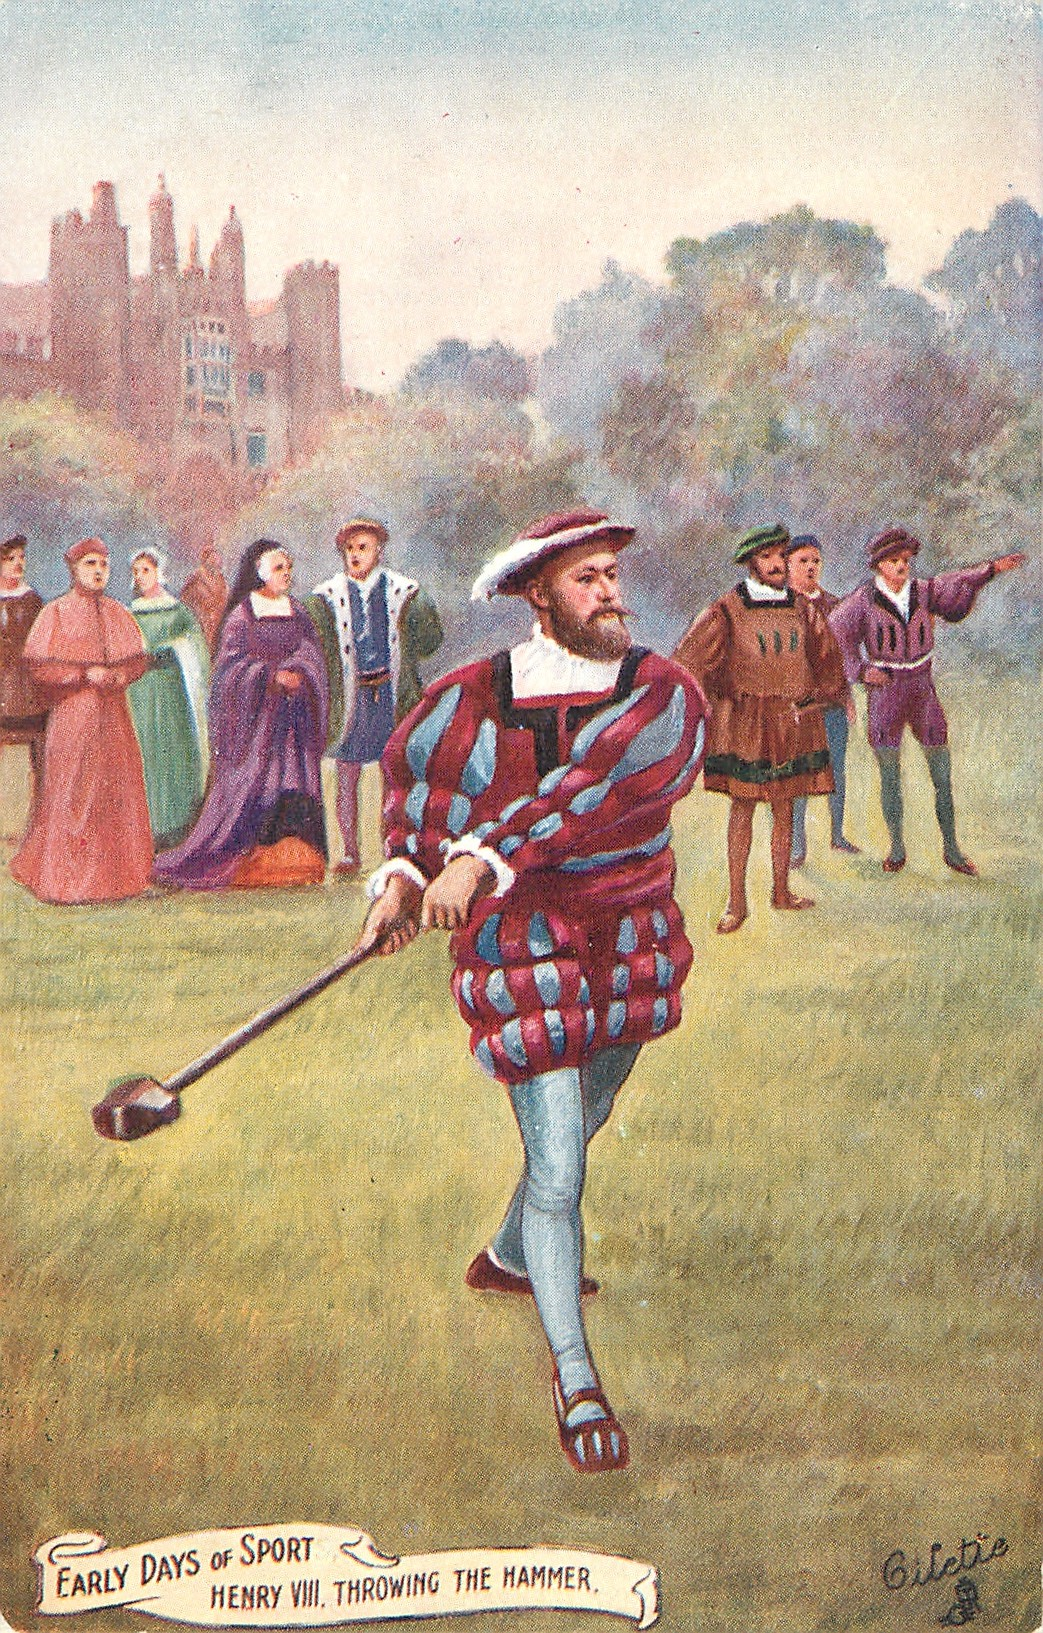 HENRY VIII THROWING THE HAMMER